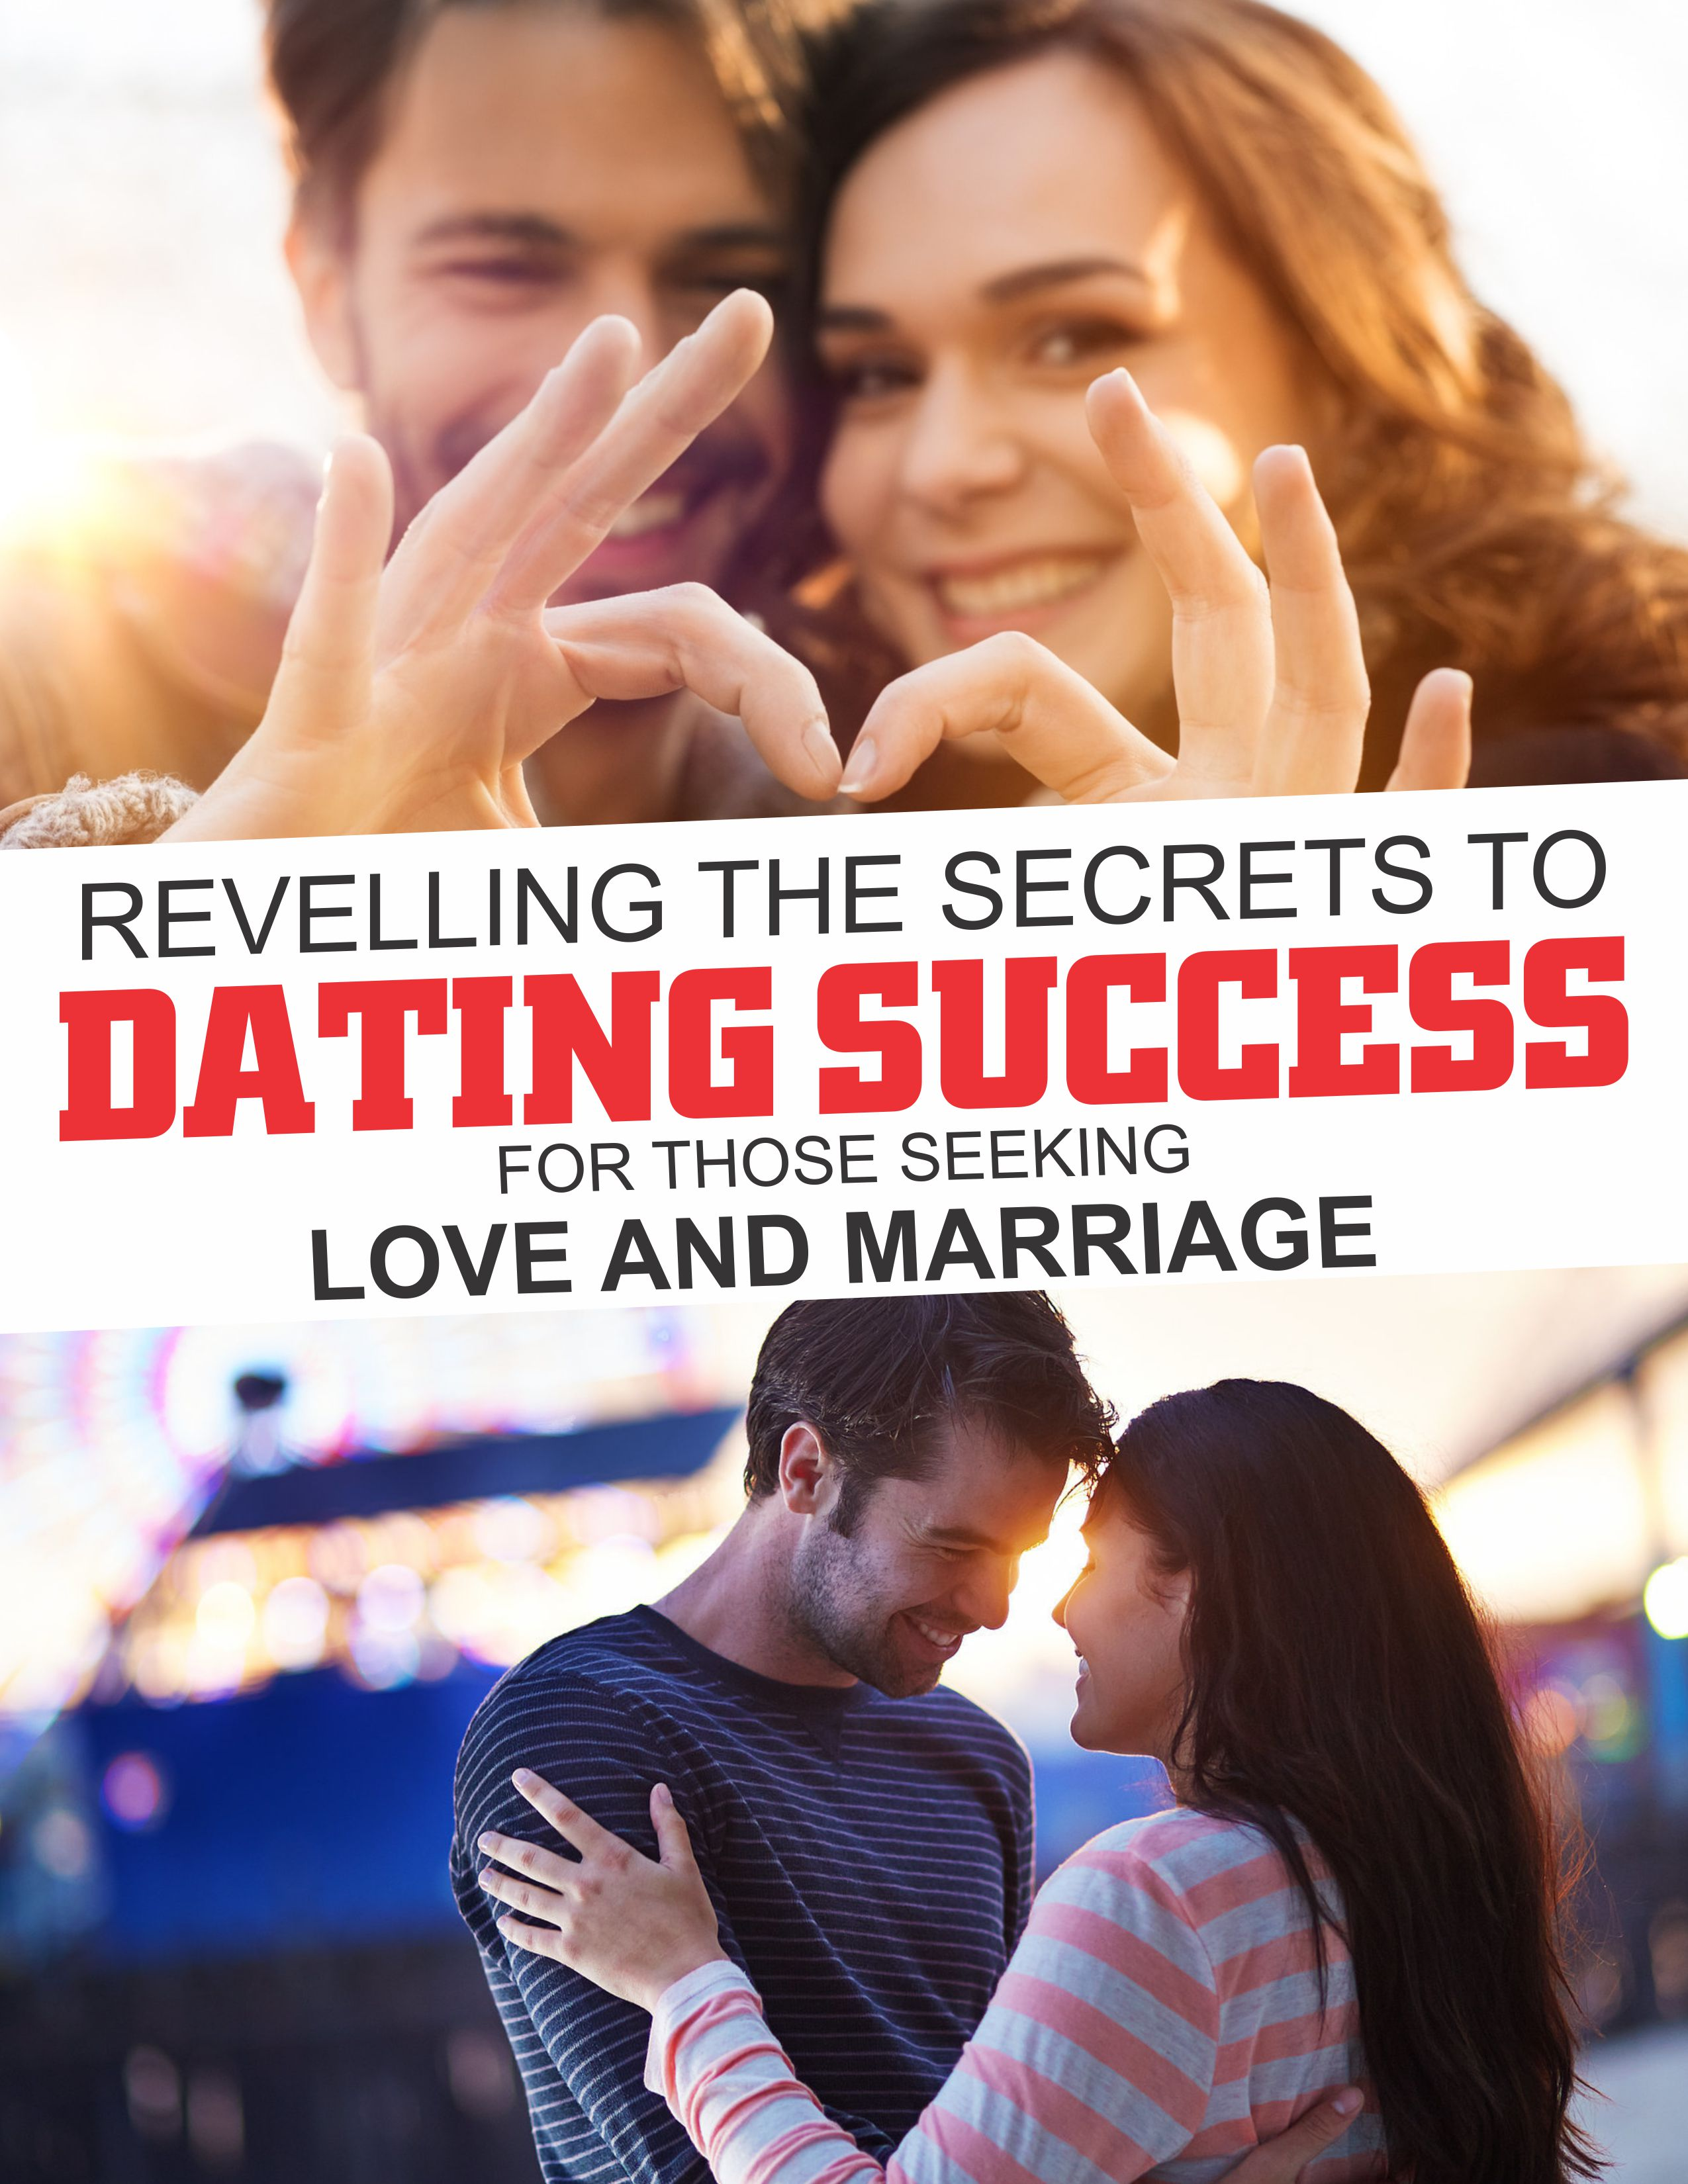 Secrets to online dating success